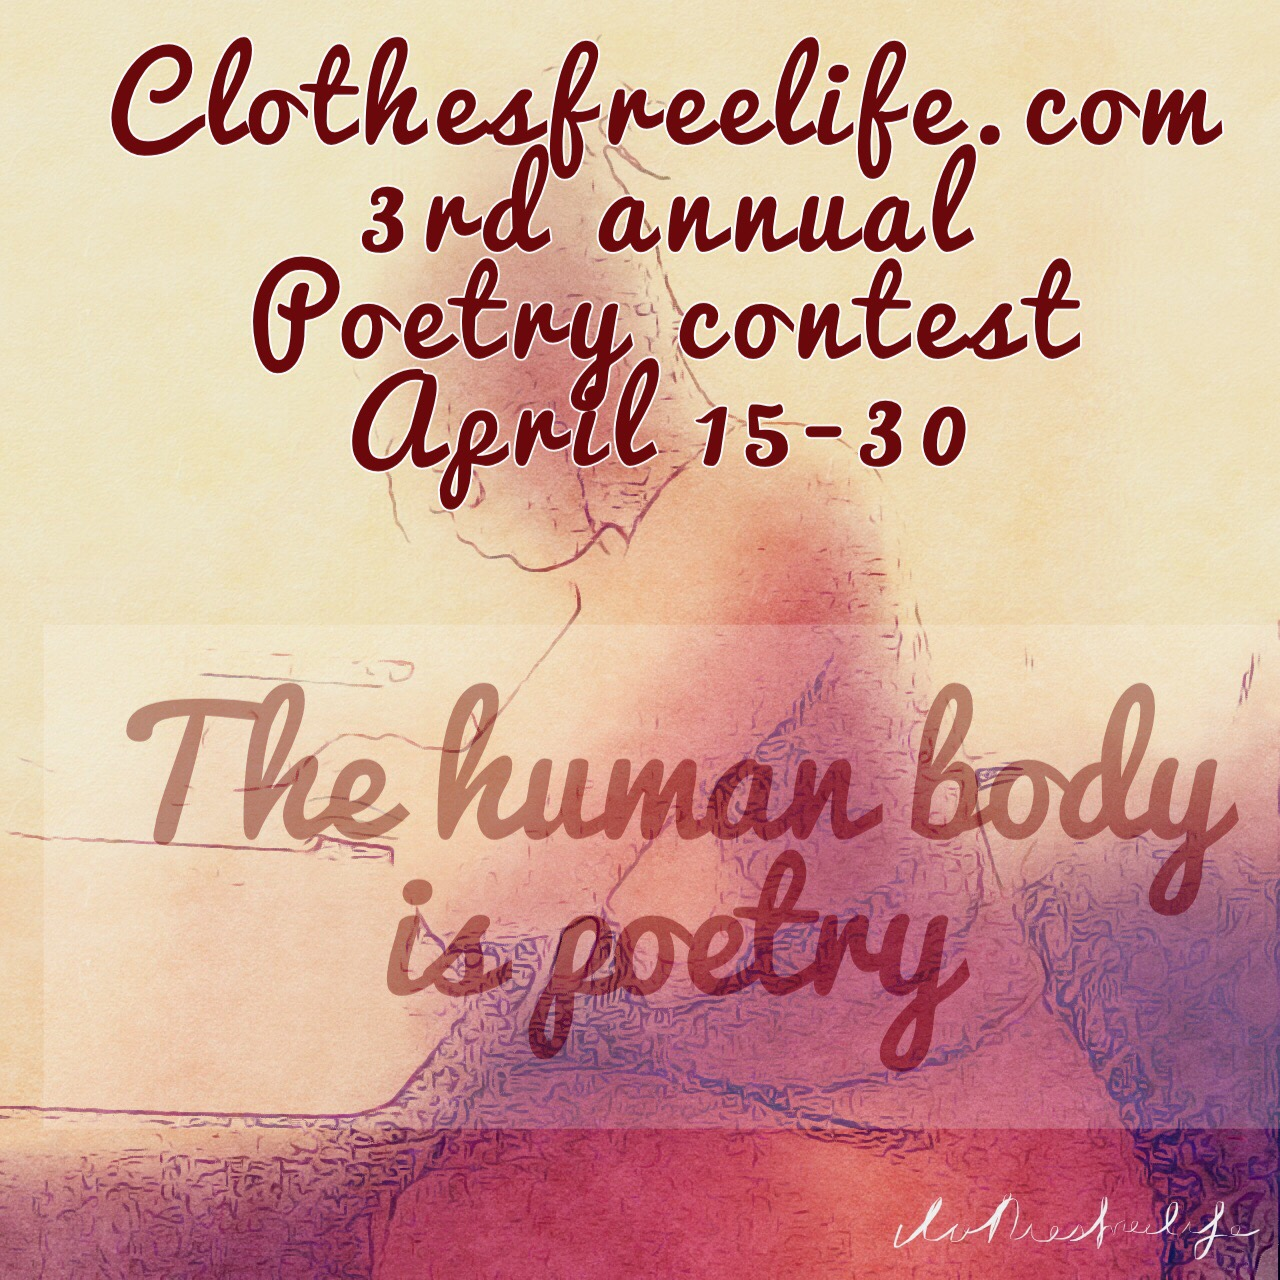 Annual Clothes Free Poetry Contest Continues!